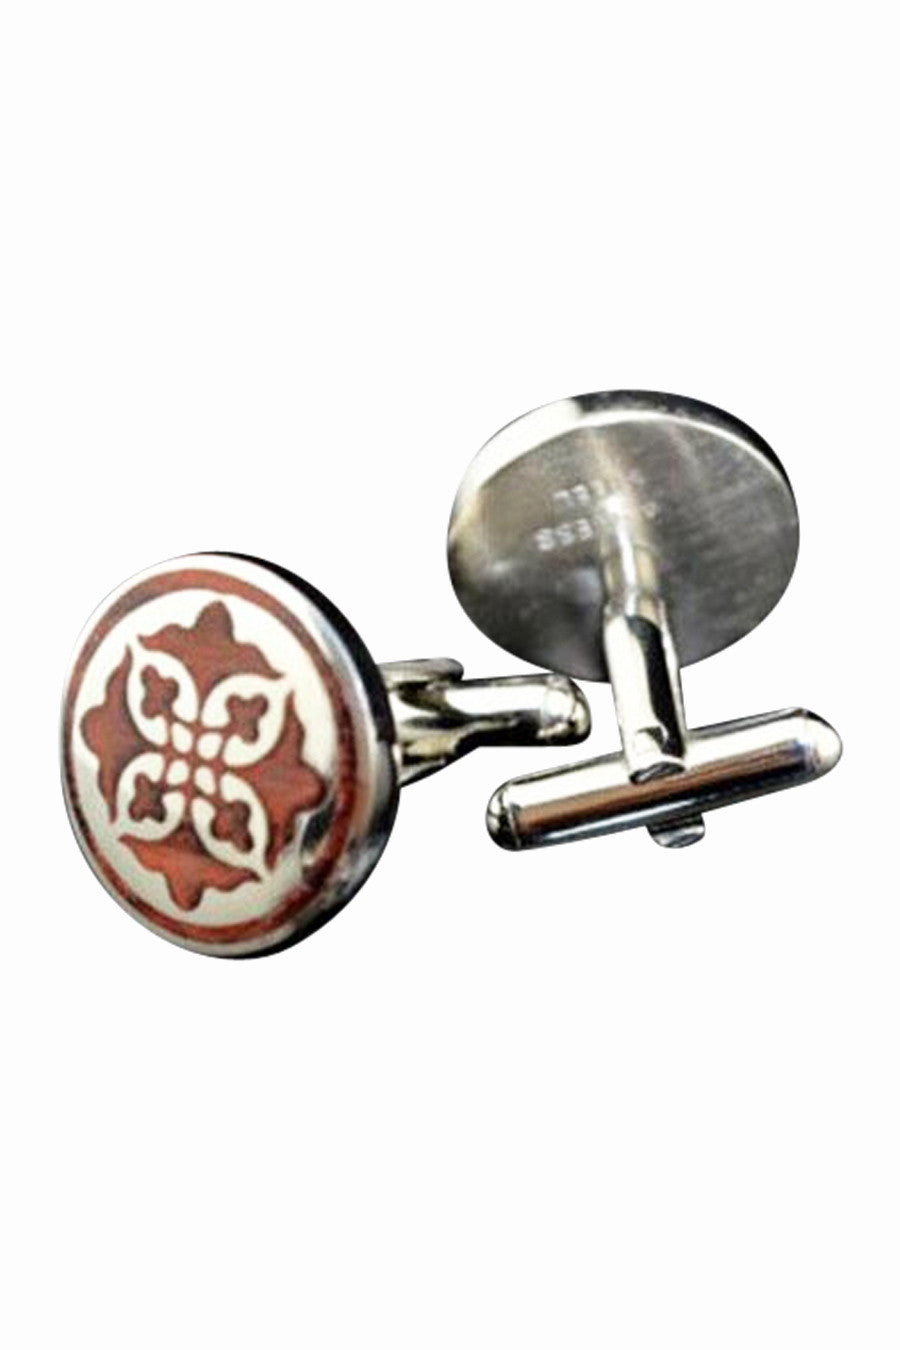 Retro Rosewood Men's Cufflinks